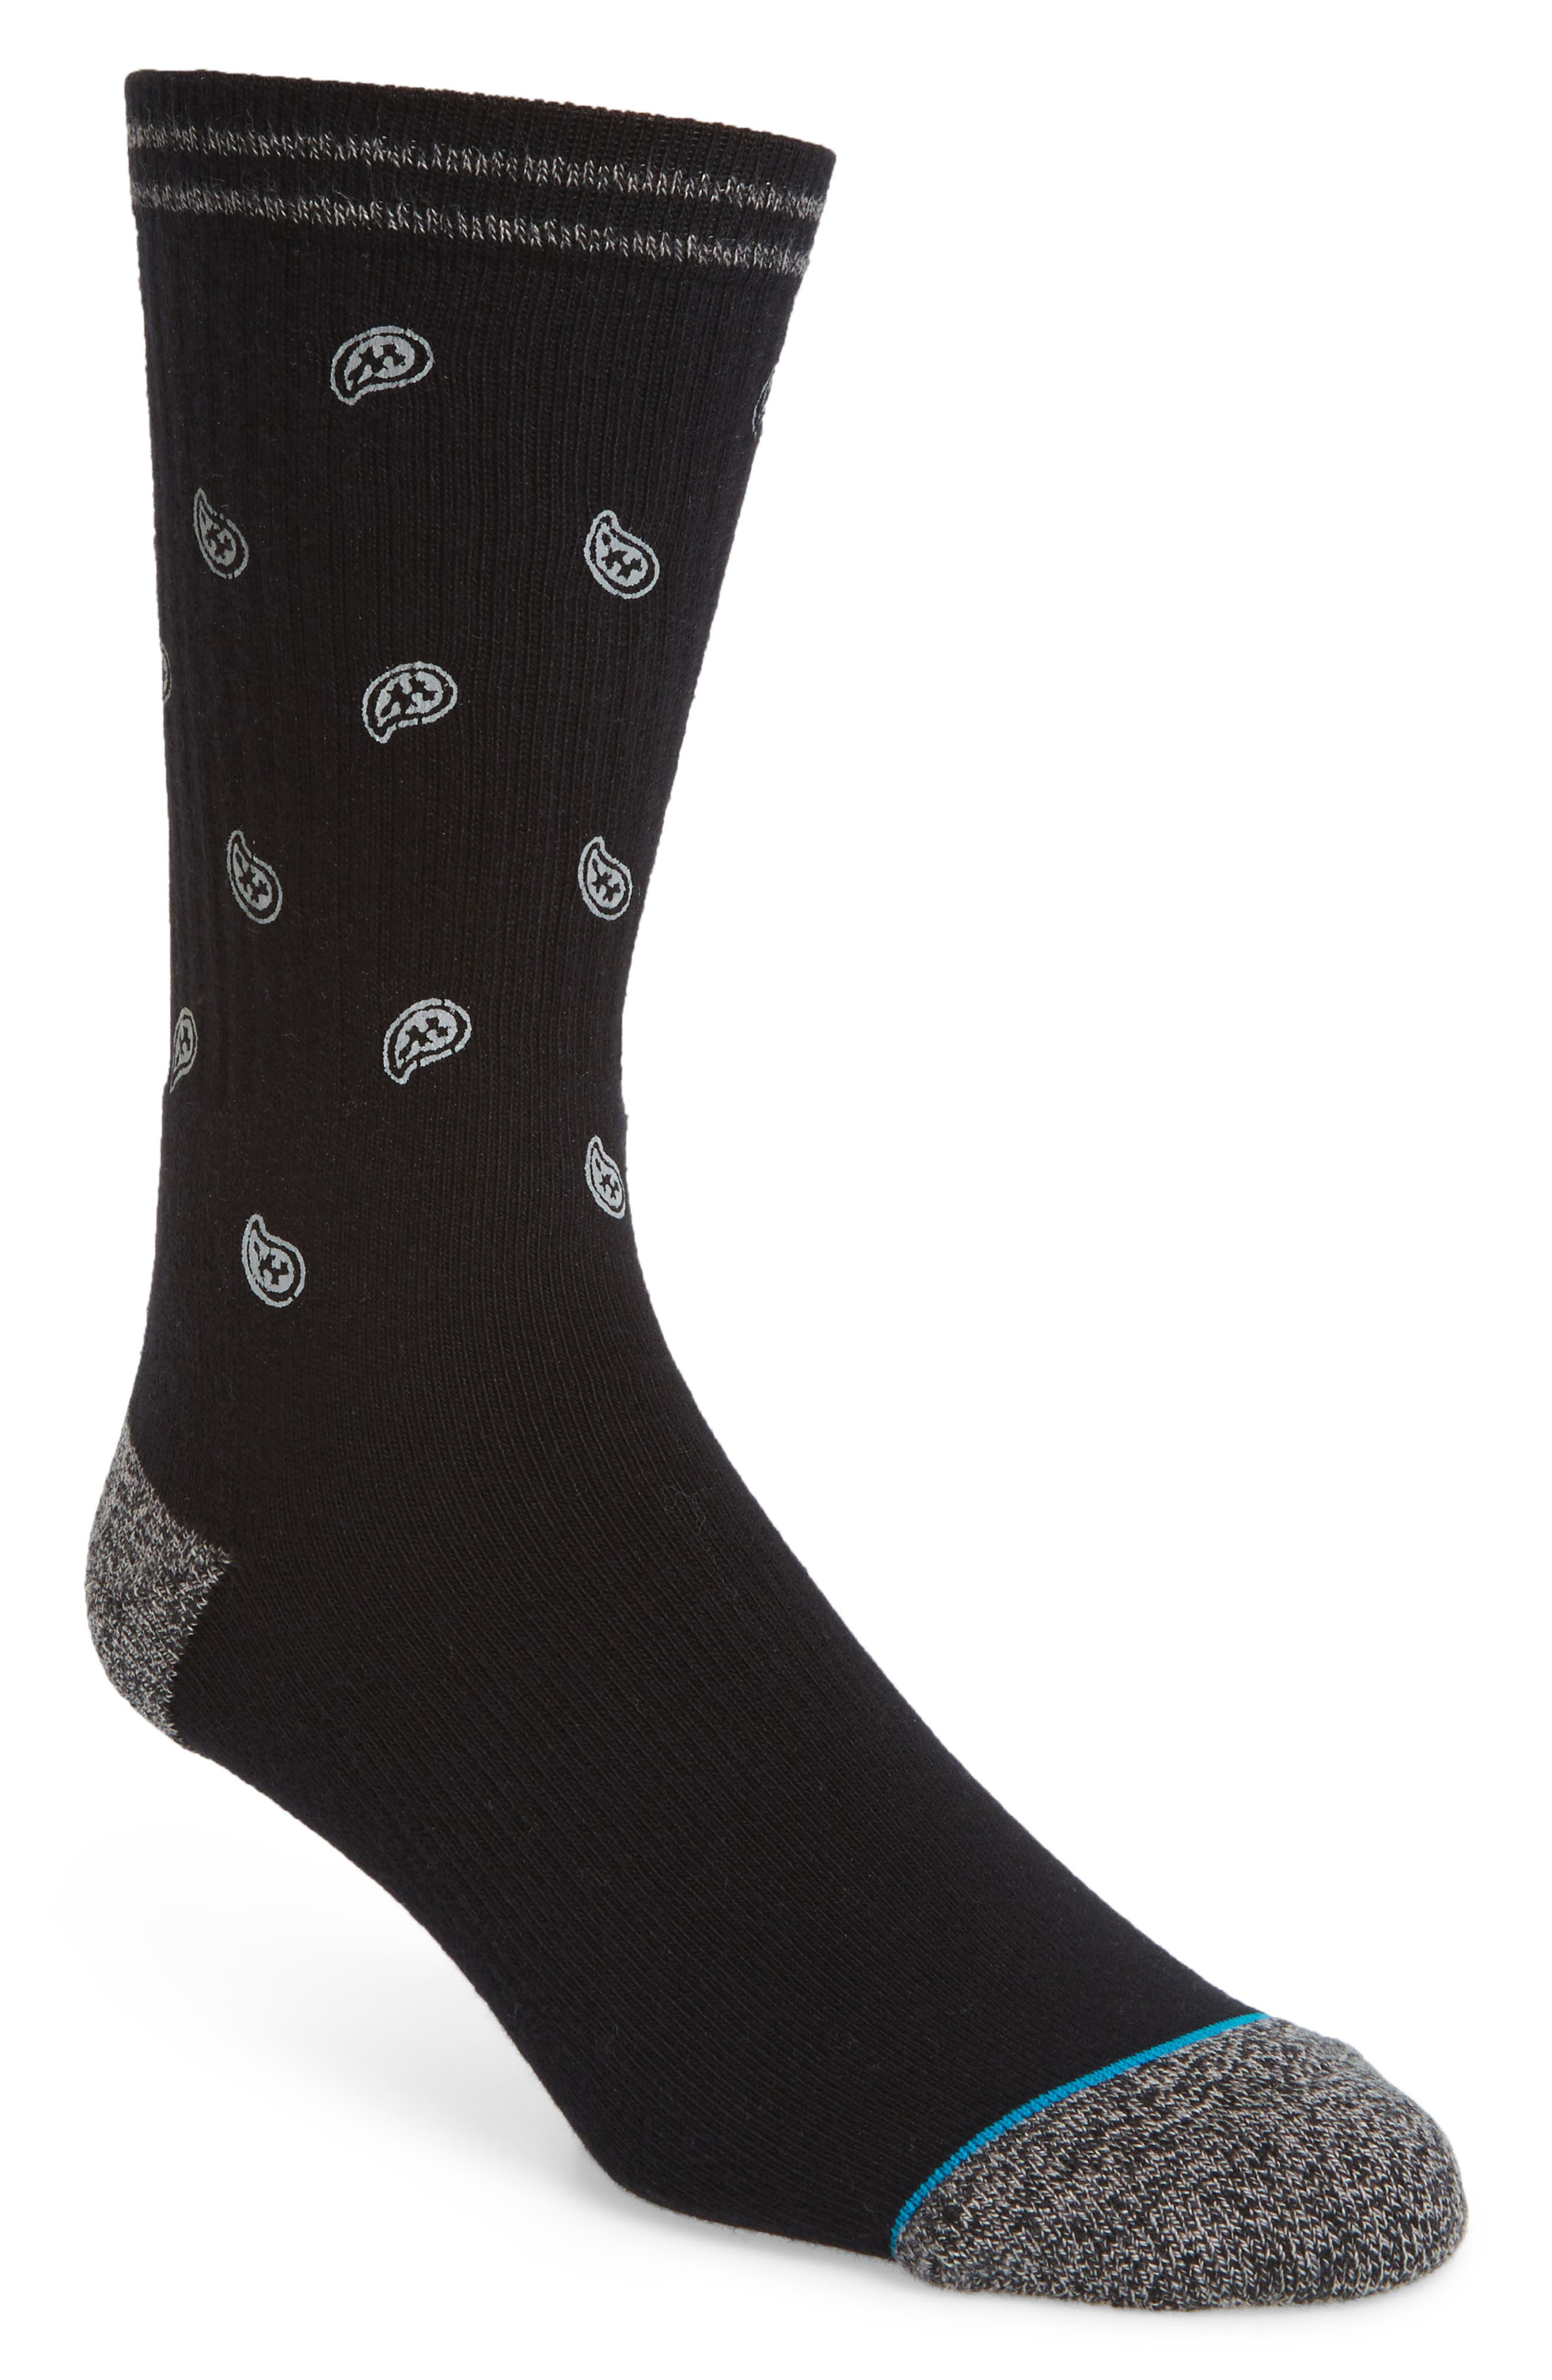 Emerge Socks,                         Main,                         color, BLACK